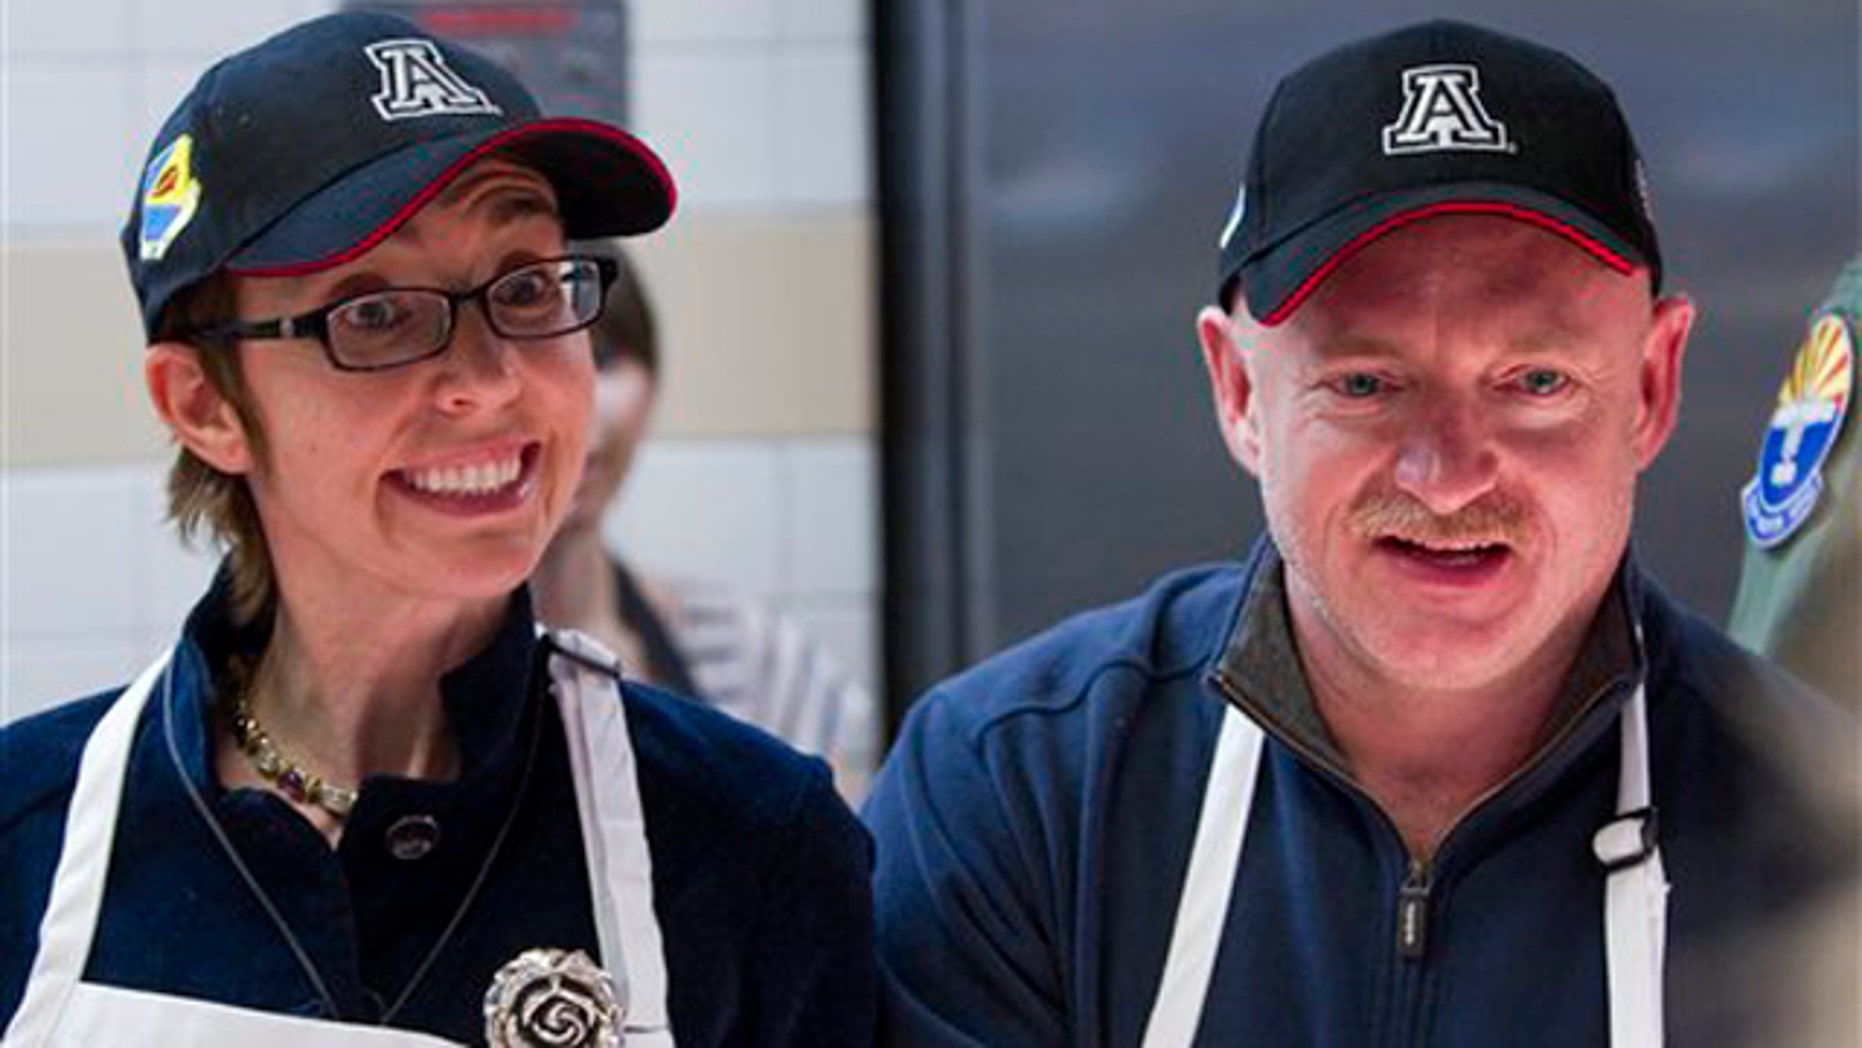 Nov. 24, 2011: Rep Gabrielle Giffords and her husband, retired Capt. Mark Kelly, serve a Thanksgiving meal to troops at Davis-Monthan Air Force Base in Tucson, Ariz.